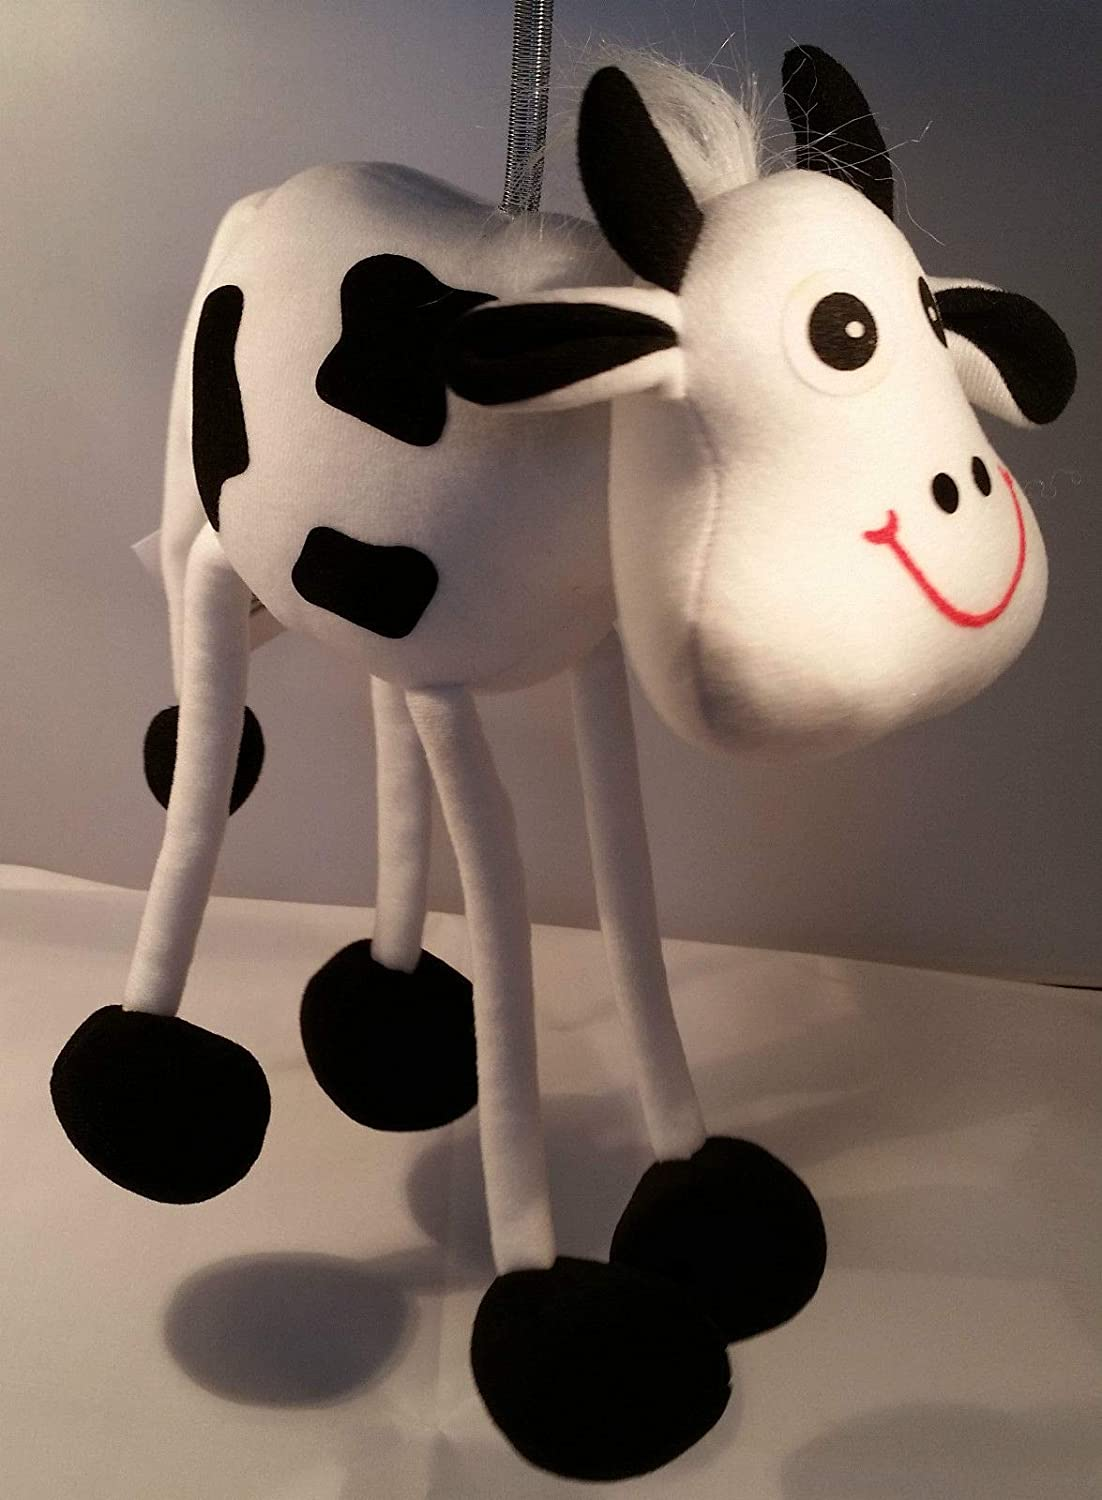 Springy Spotty Cow Panopoly Animal Mobile Distraction for Babies/Young Children